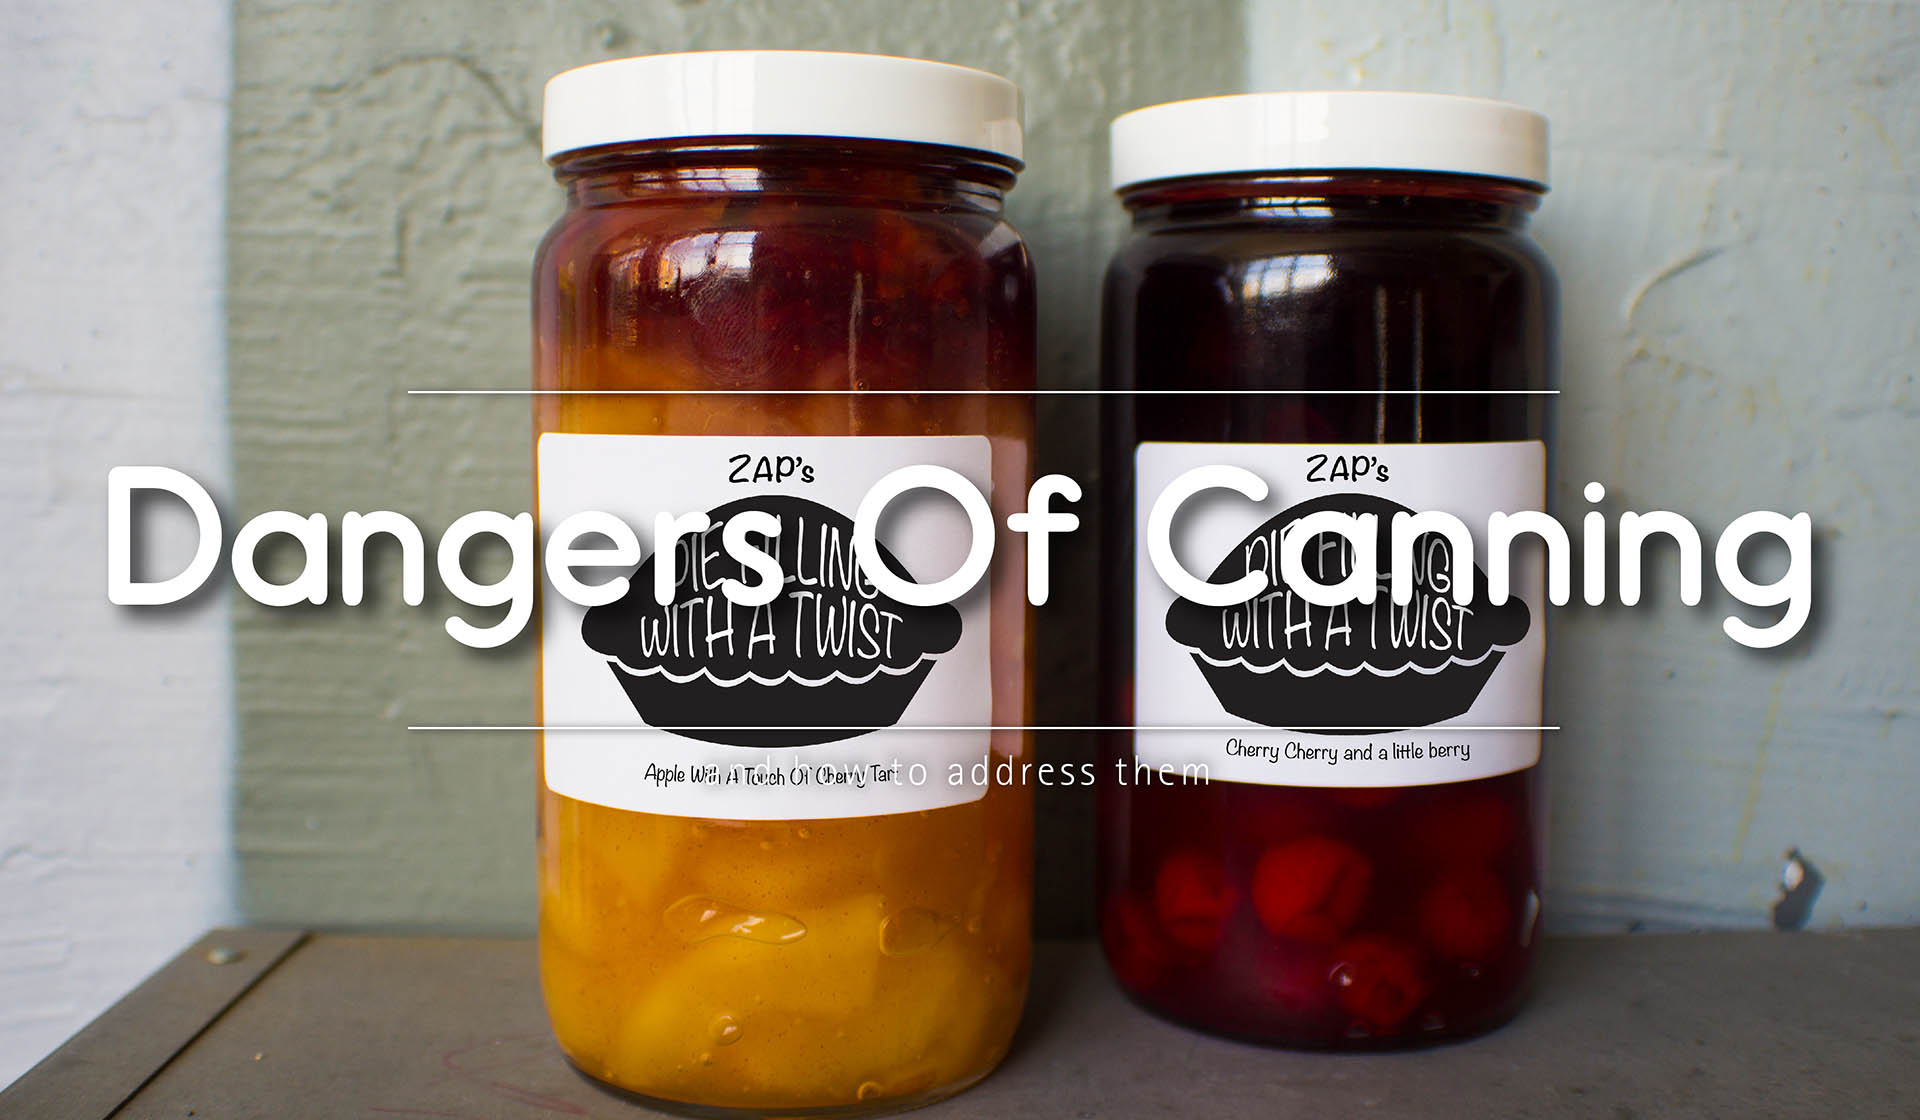 Dangers Associated with Canning and How to Address Them